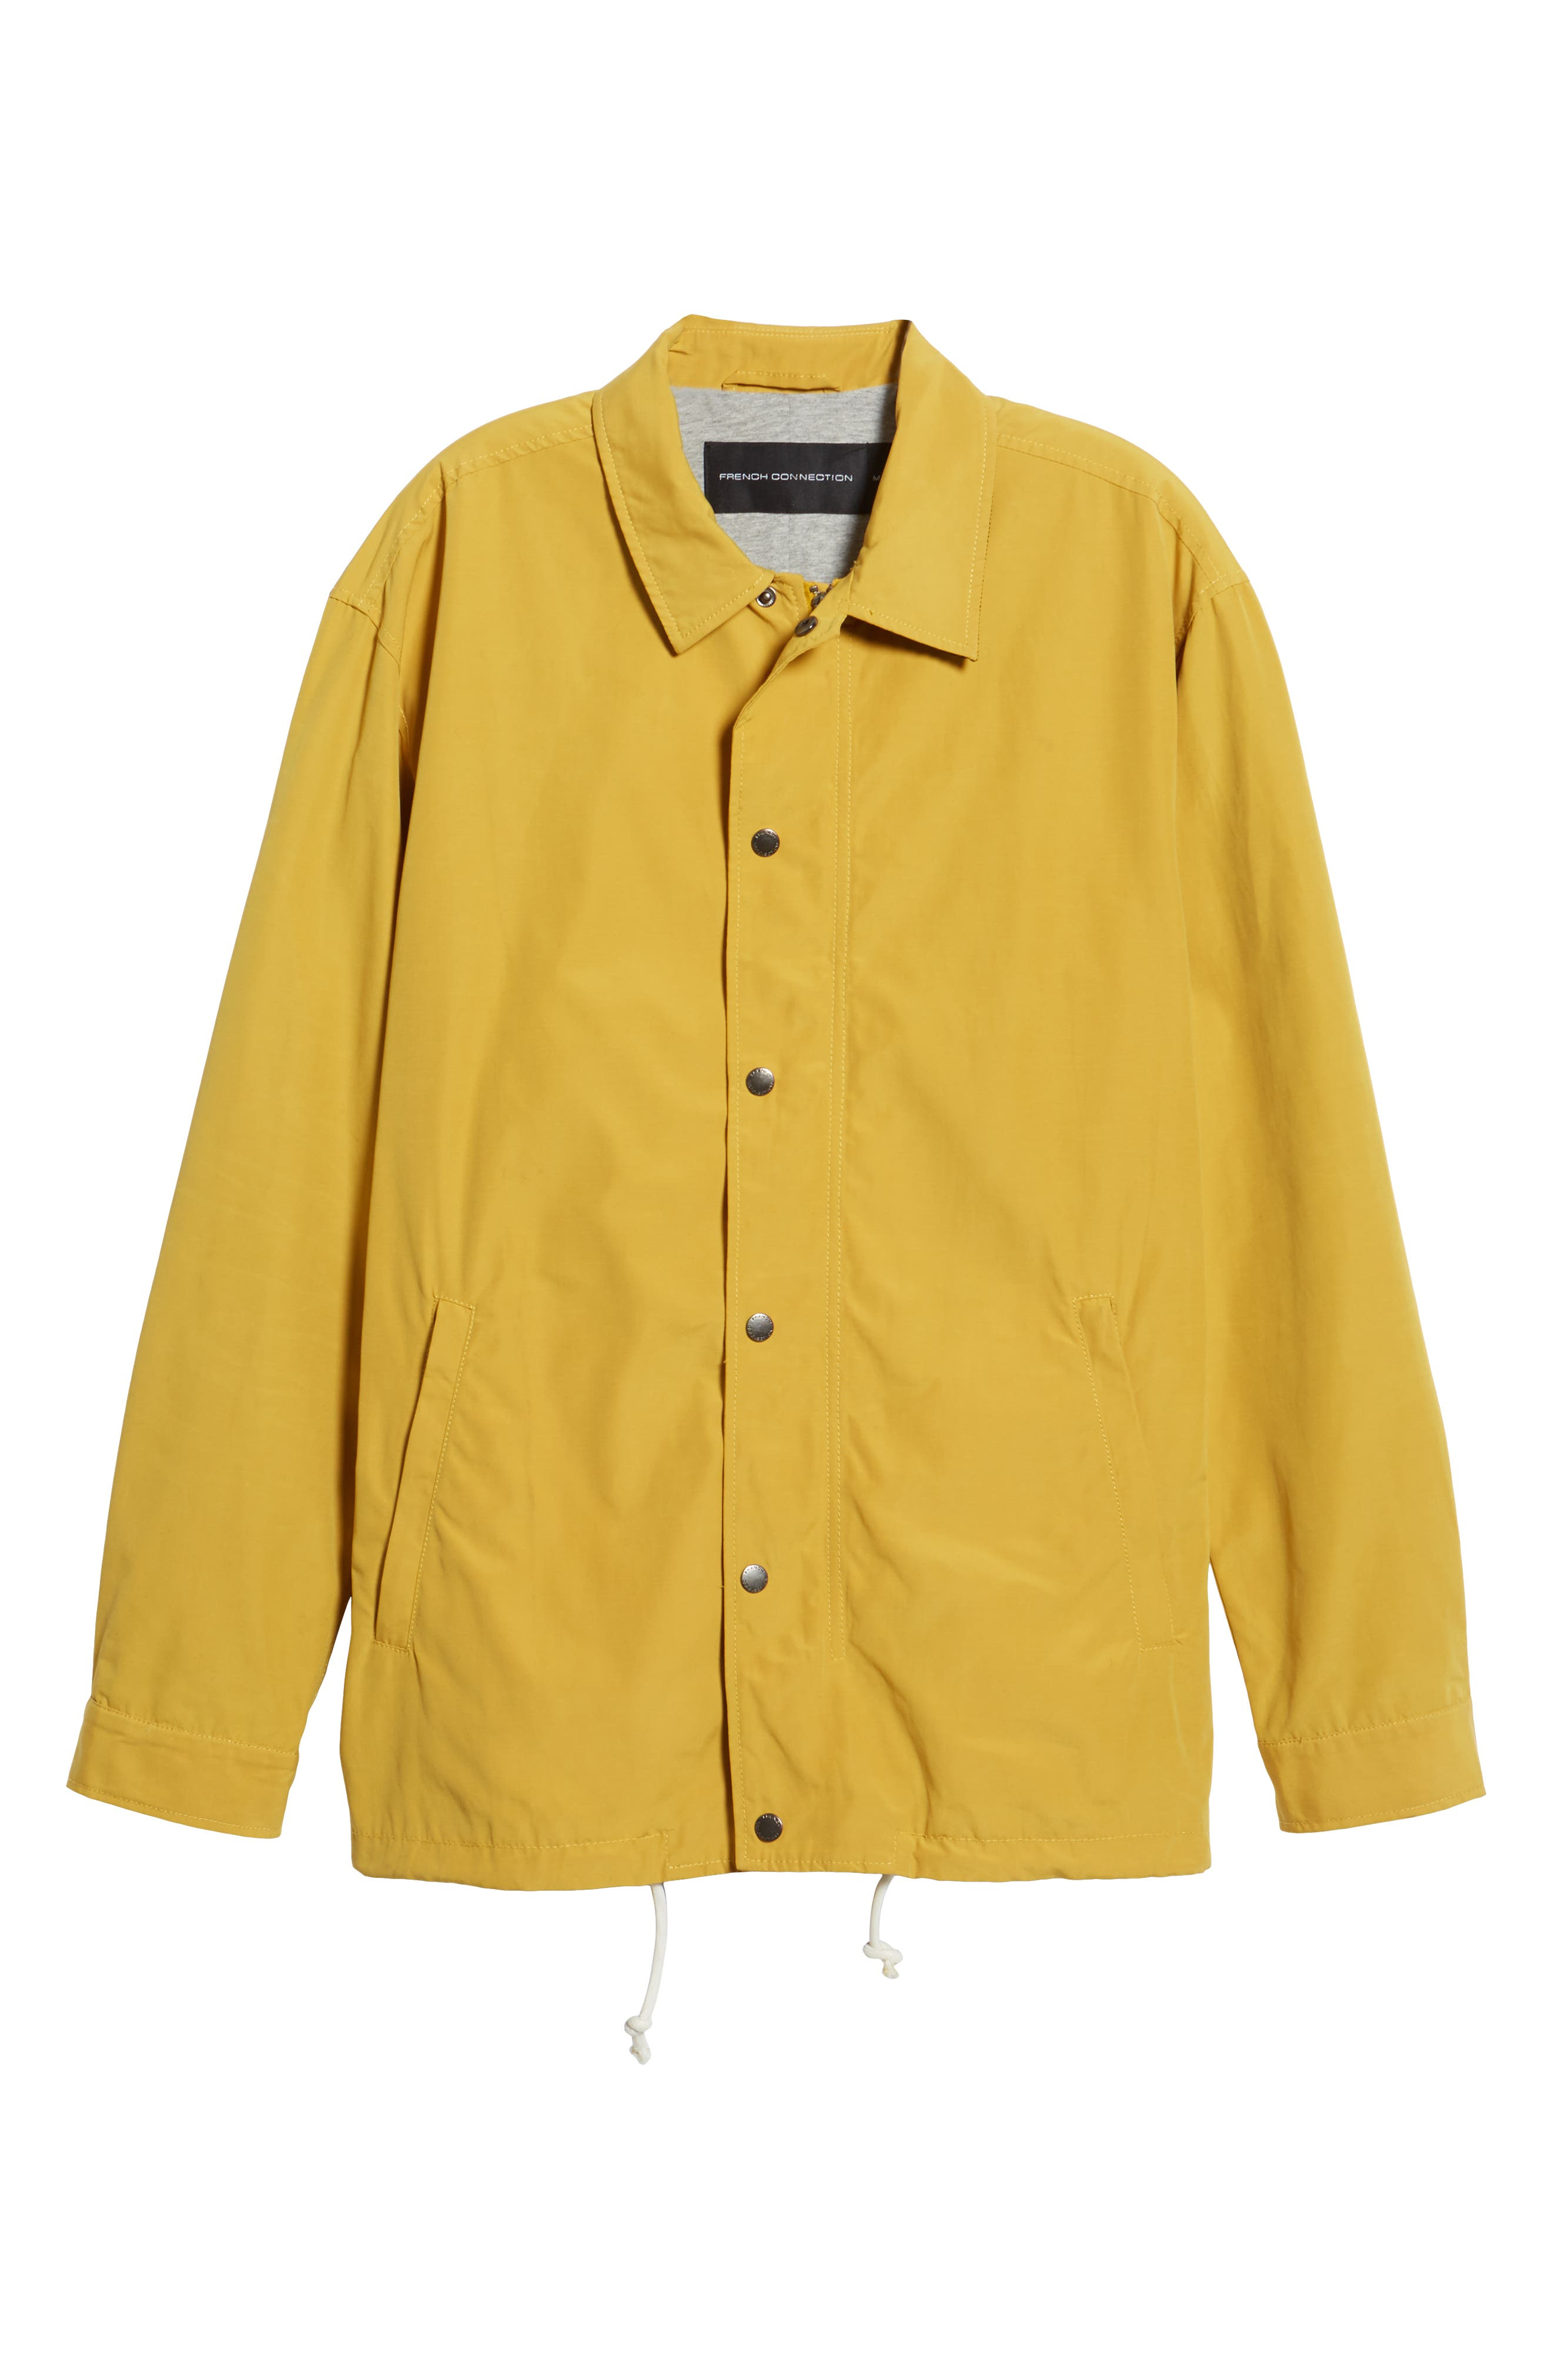 FRENCH CONNECTION,                             Waxed Coach's Jacket,                             Alternate thumbnail 5, color,                             700